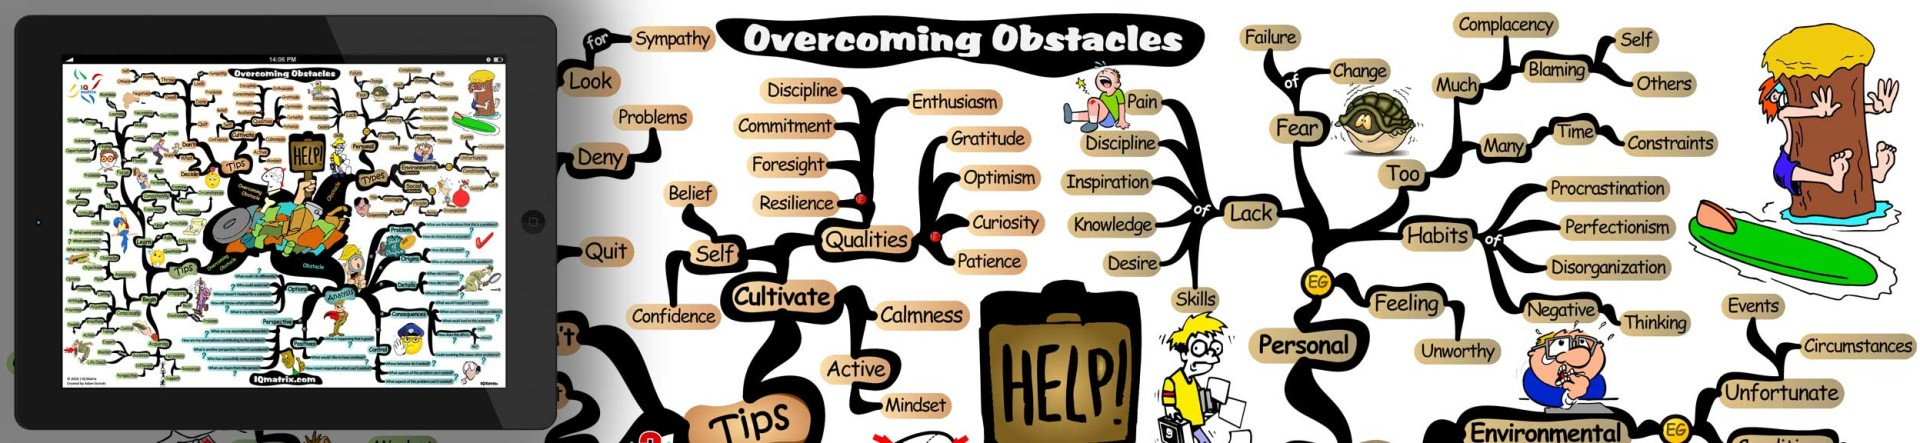 college essays about obstacles Free overcoming obstacles papers, essays, and research papers  discovering obstacles hindering college graduation - introduction: according to the national center .